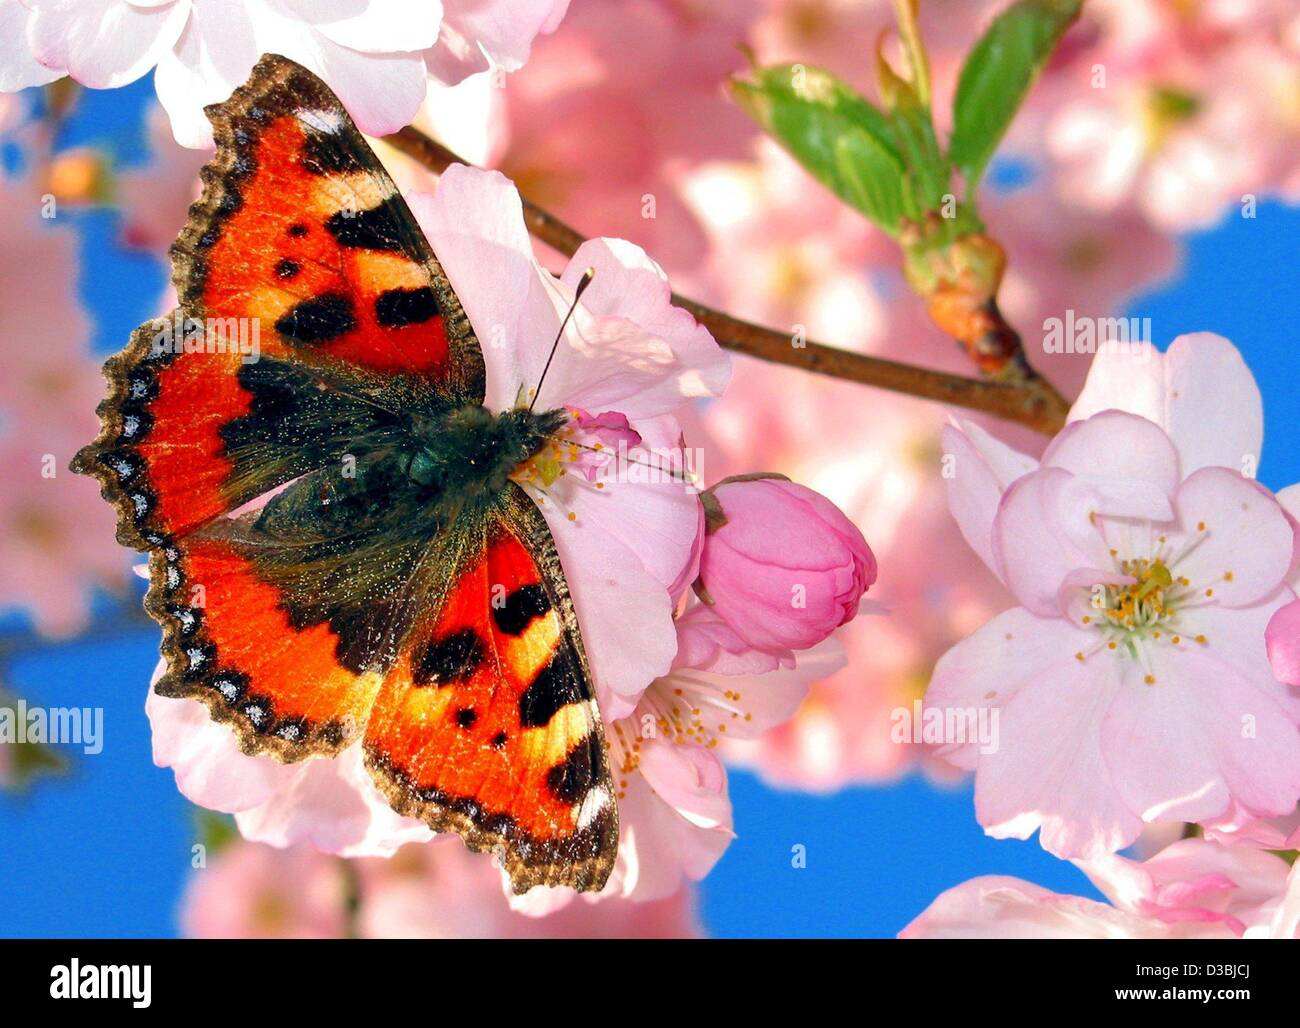 (dpa) - A Small Tortoiseshell butterfly savours nectar from cherry blossoms in Magdeburg, Germany, 15 April 2003. - Stock Image